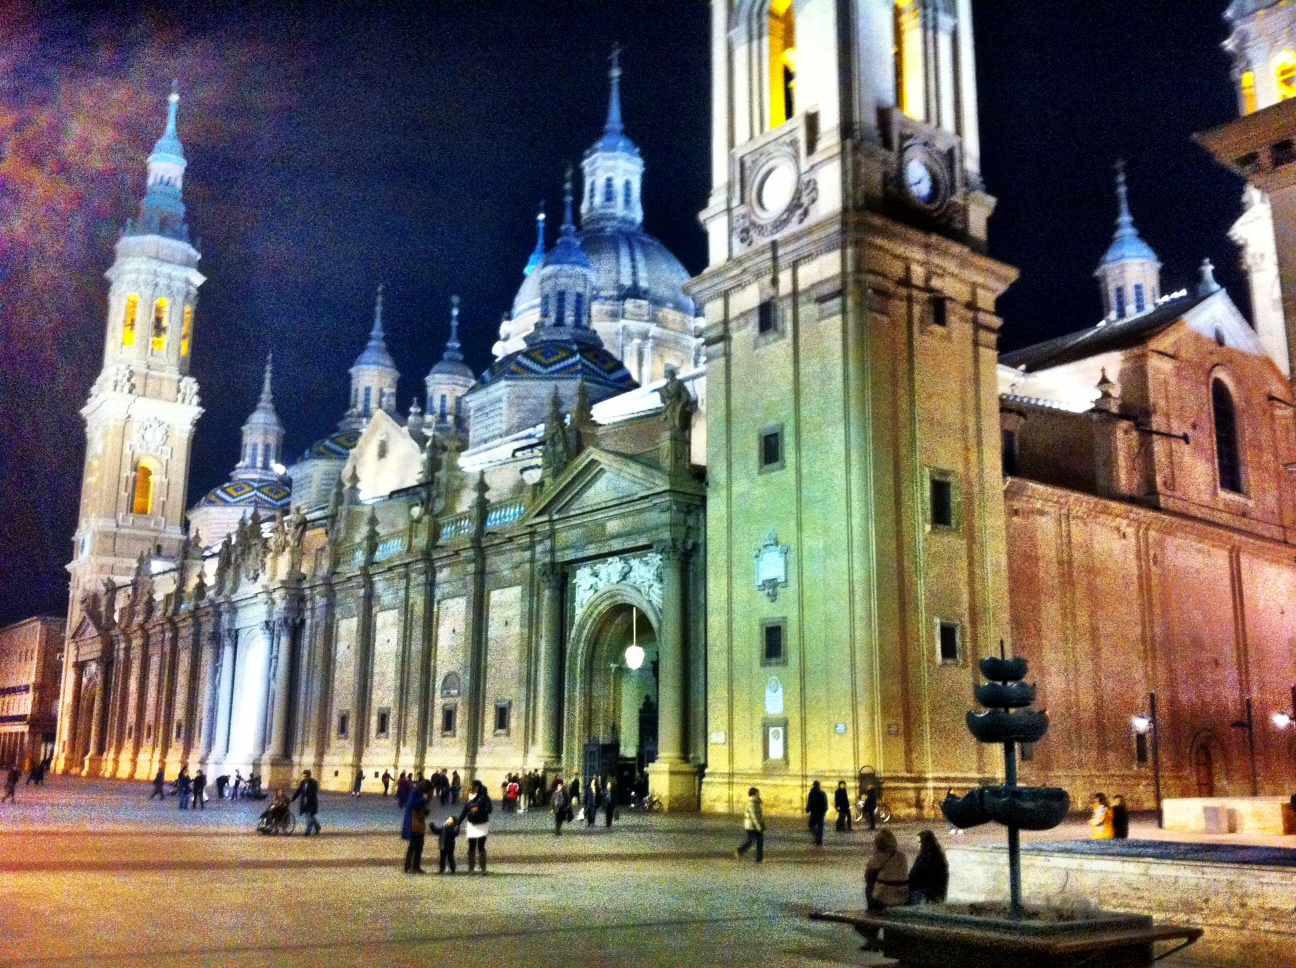 Zaragoza and the Basilica of Our Lady of the Pillar